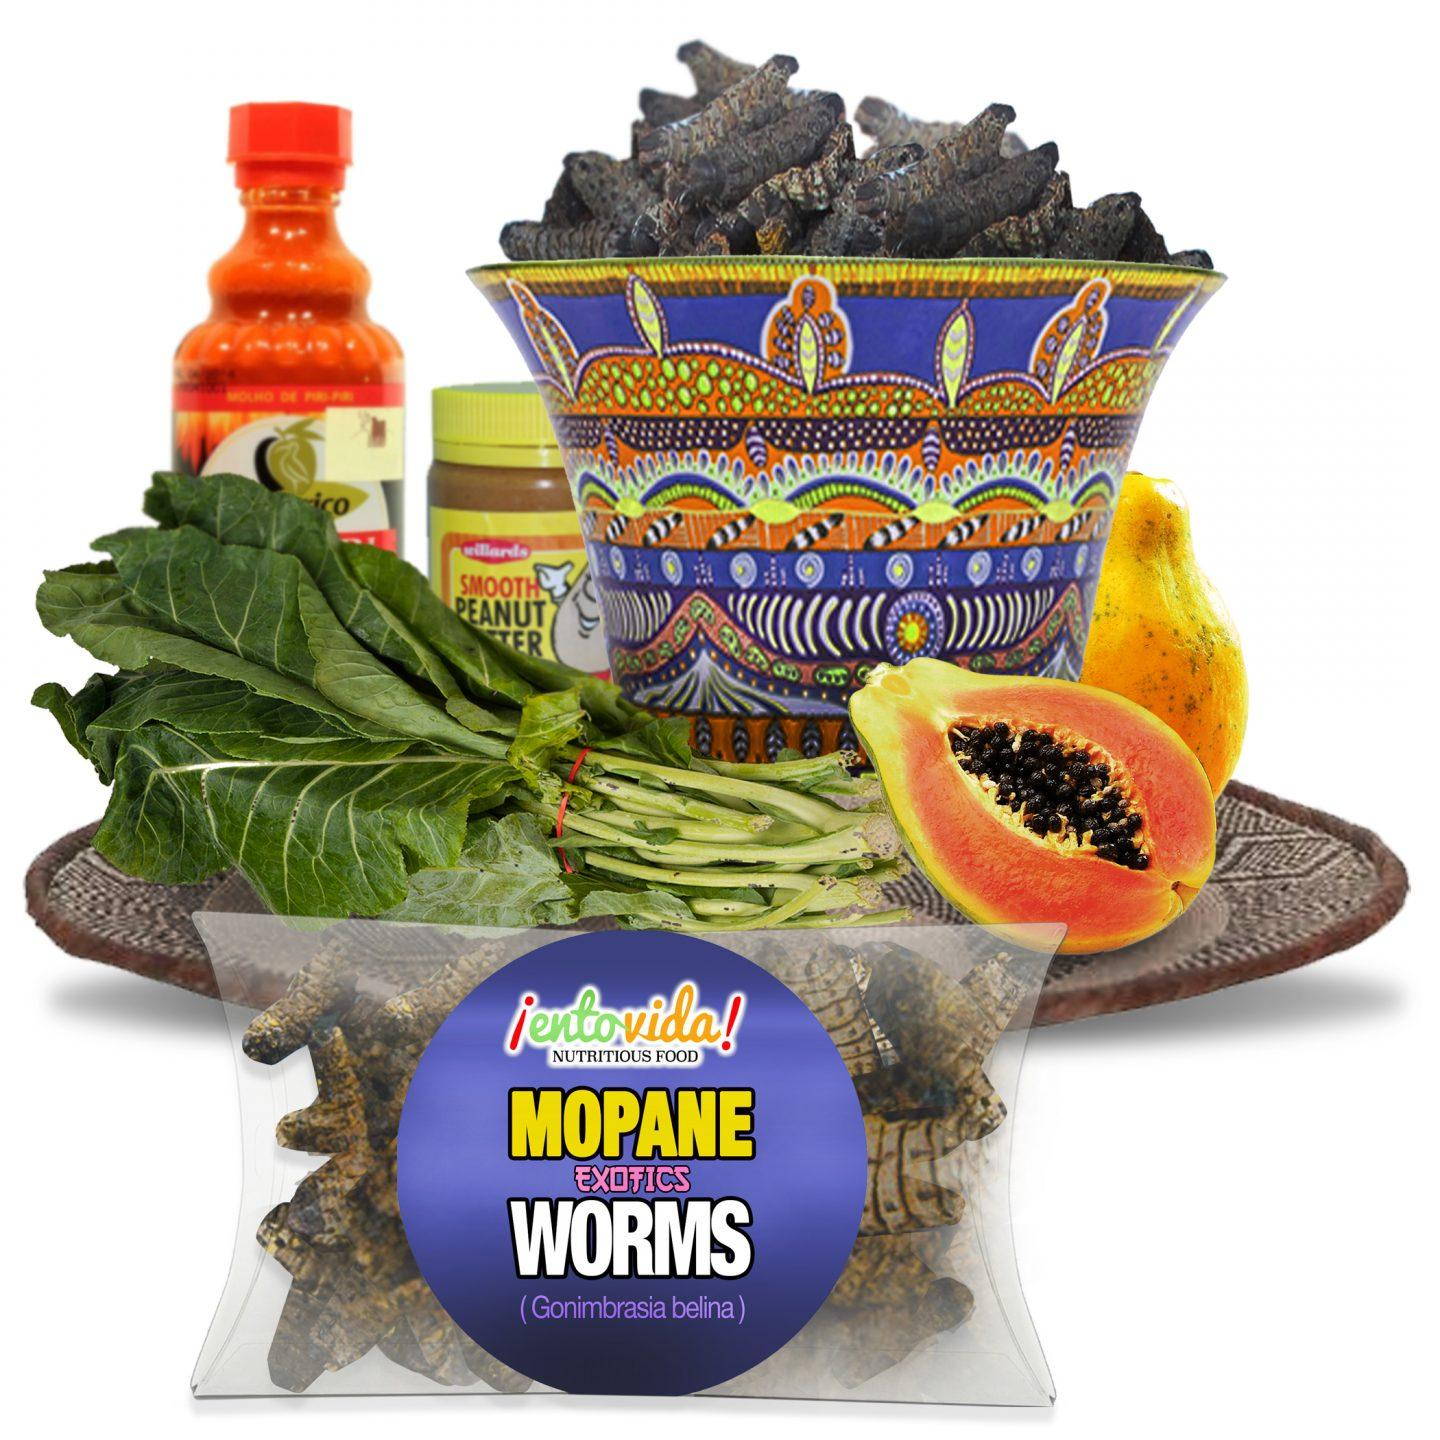 Mopane Worms For Sale